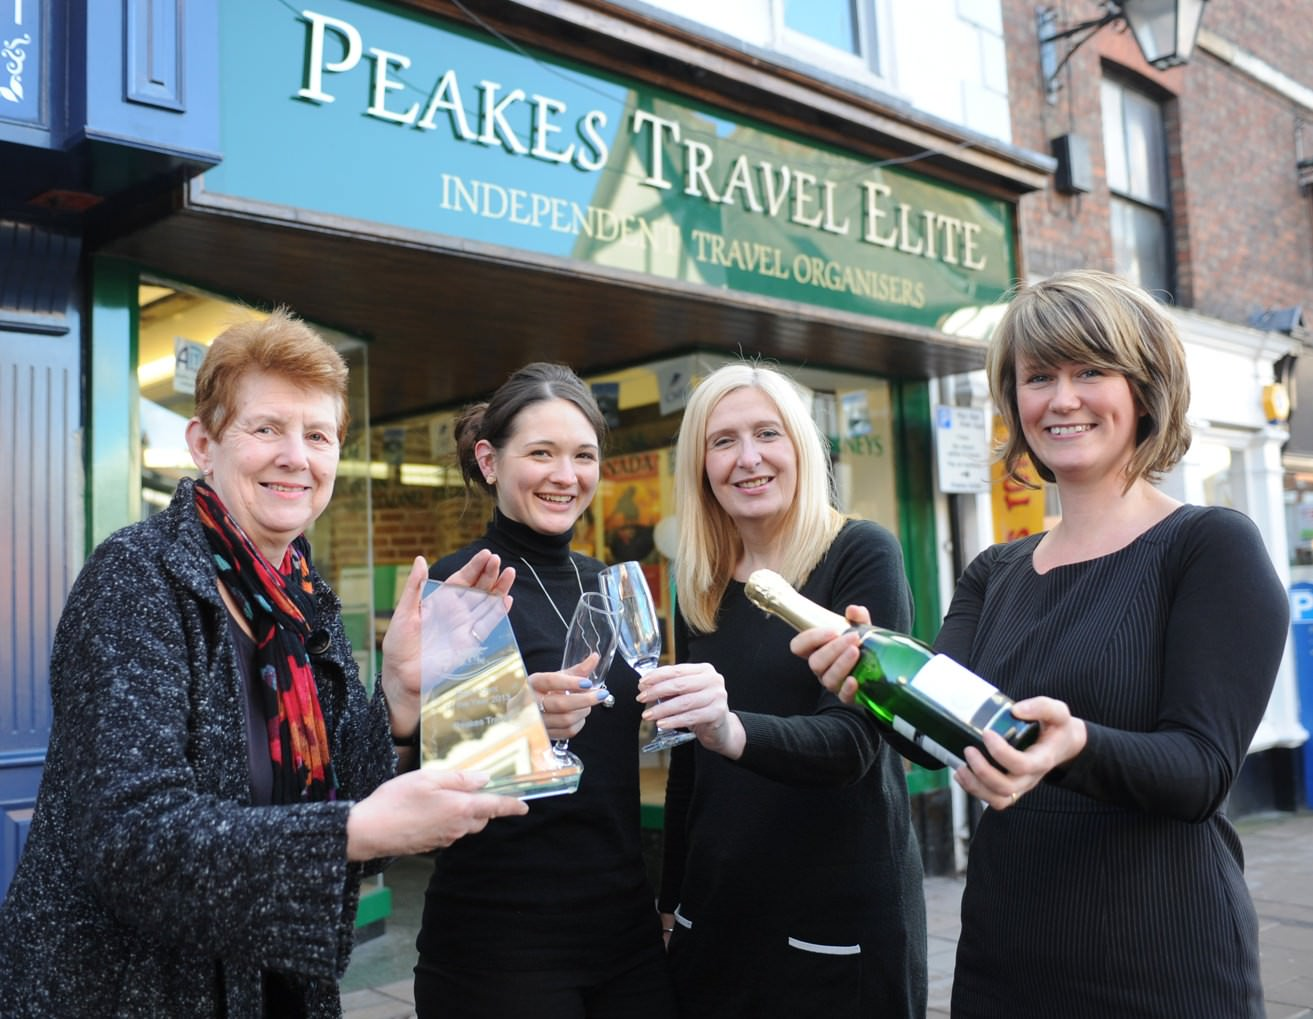 Elite Travel Group Agent of the Year Award 2013 awarded to Peakes Travel Elite